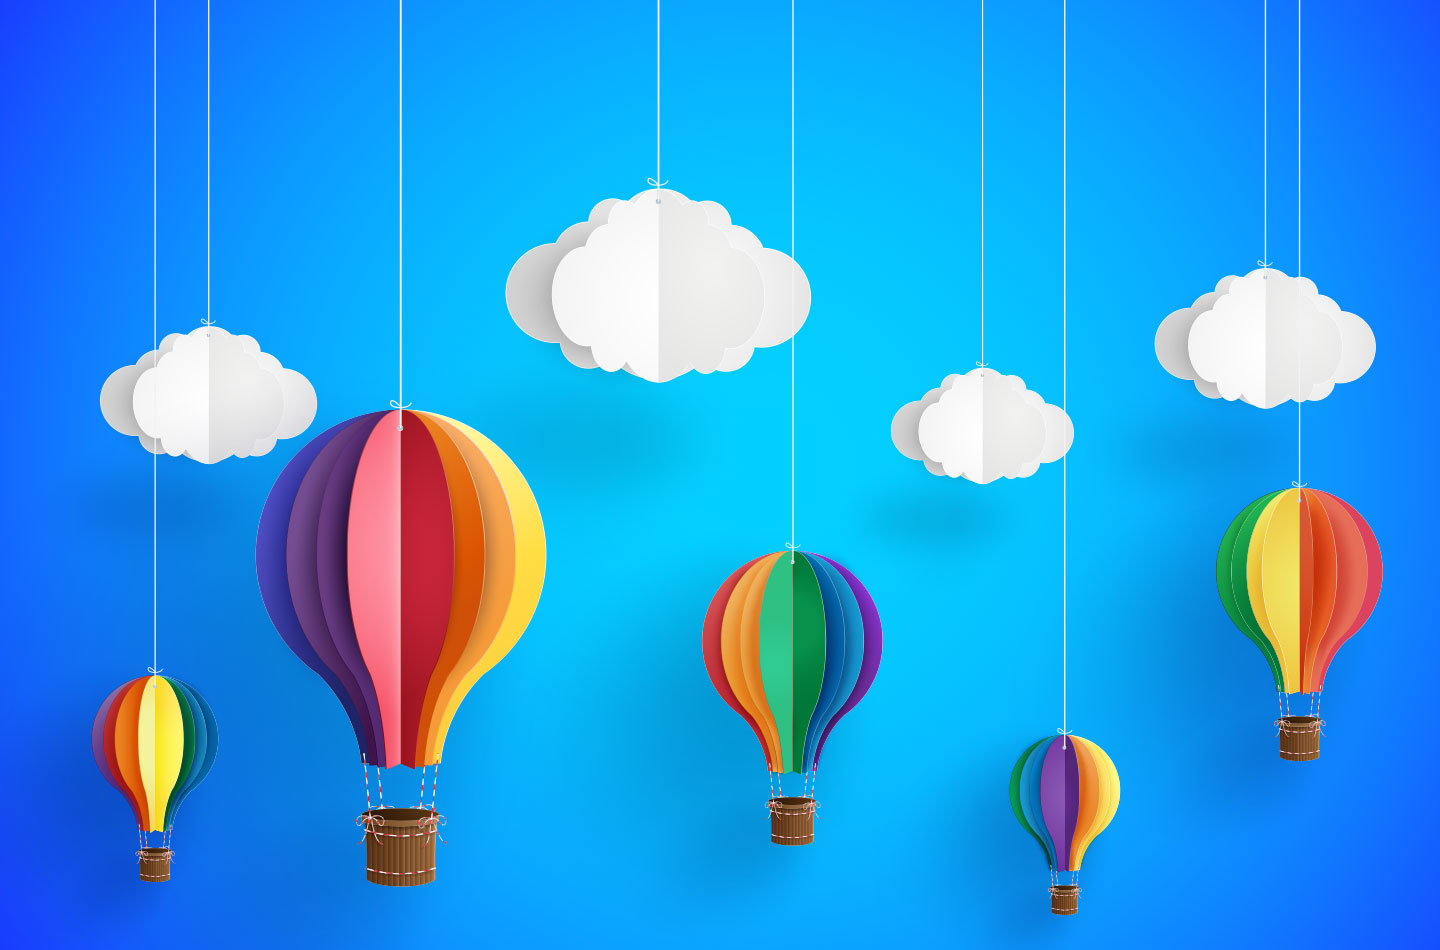 Private Cloud Computing Deployment Growth will Surge